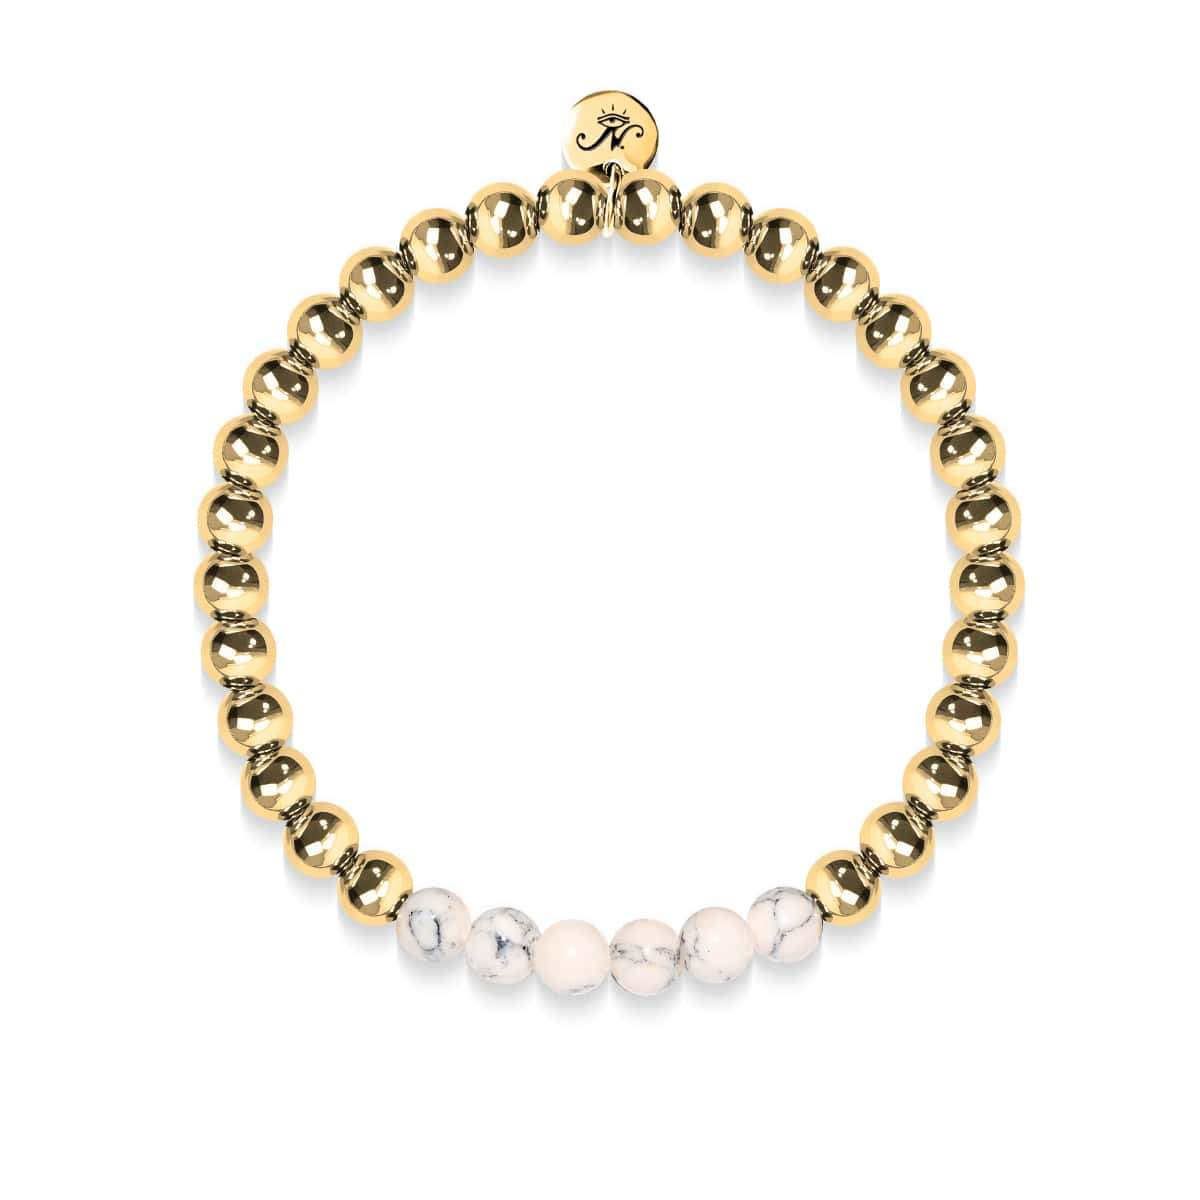 Enthusiastic | 18k Gold | Cream Turquoise | Expression Bracelet